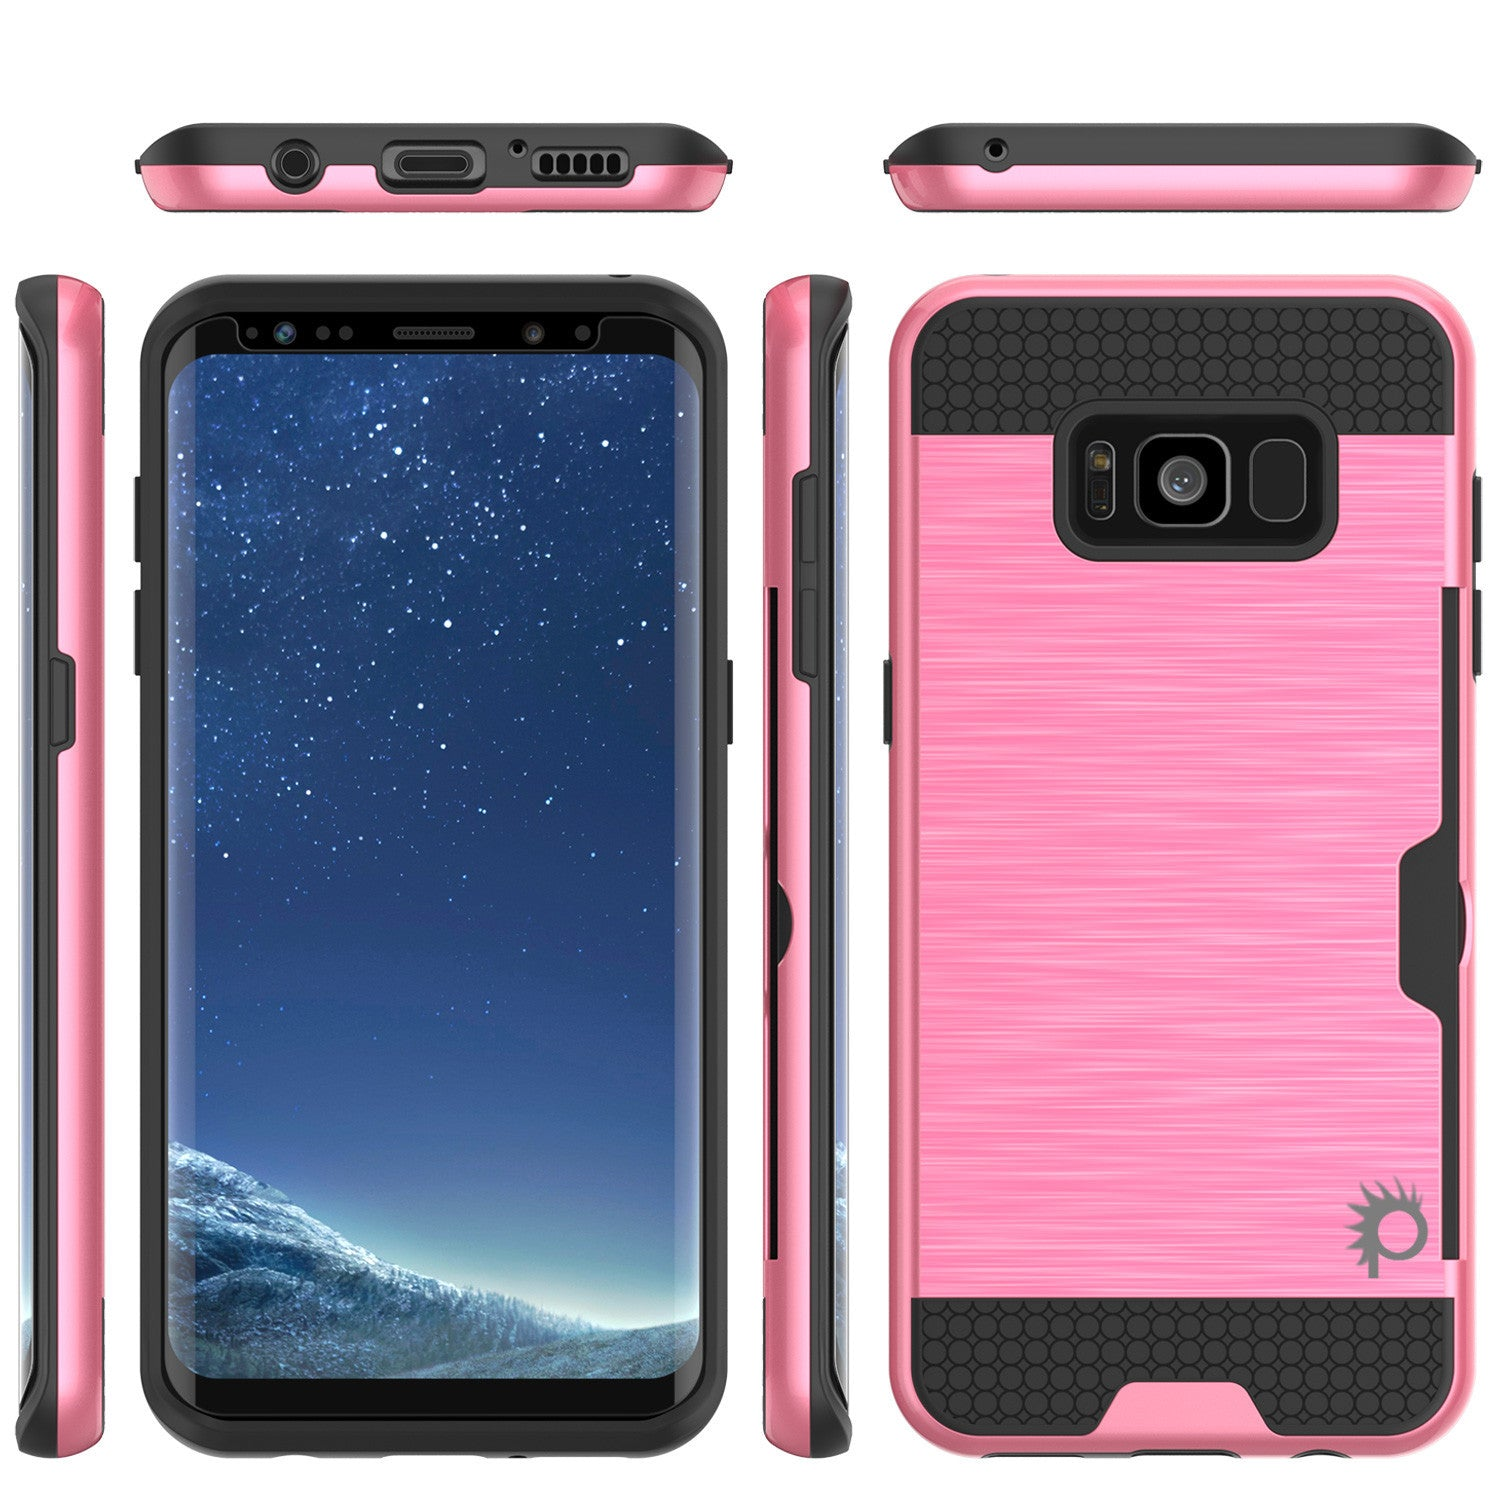 Galaxy S8 Plus Case, PUNKcase [SLOT Series] [Slim Fit] Dual-Layer Armor Cover w/Integrated Anti-Shock System, Credit Card Slot [Pink]